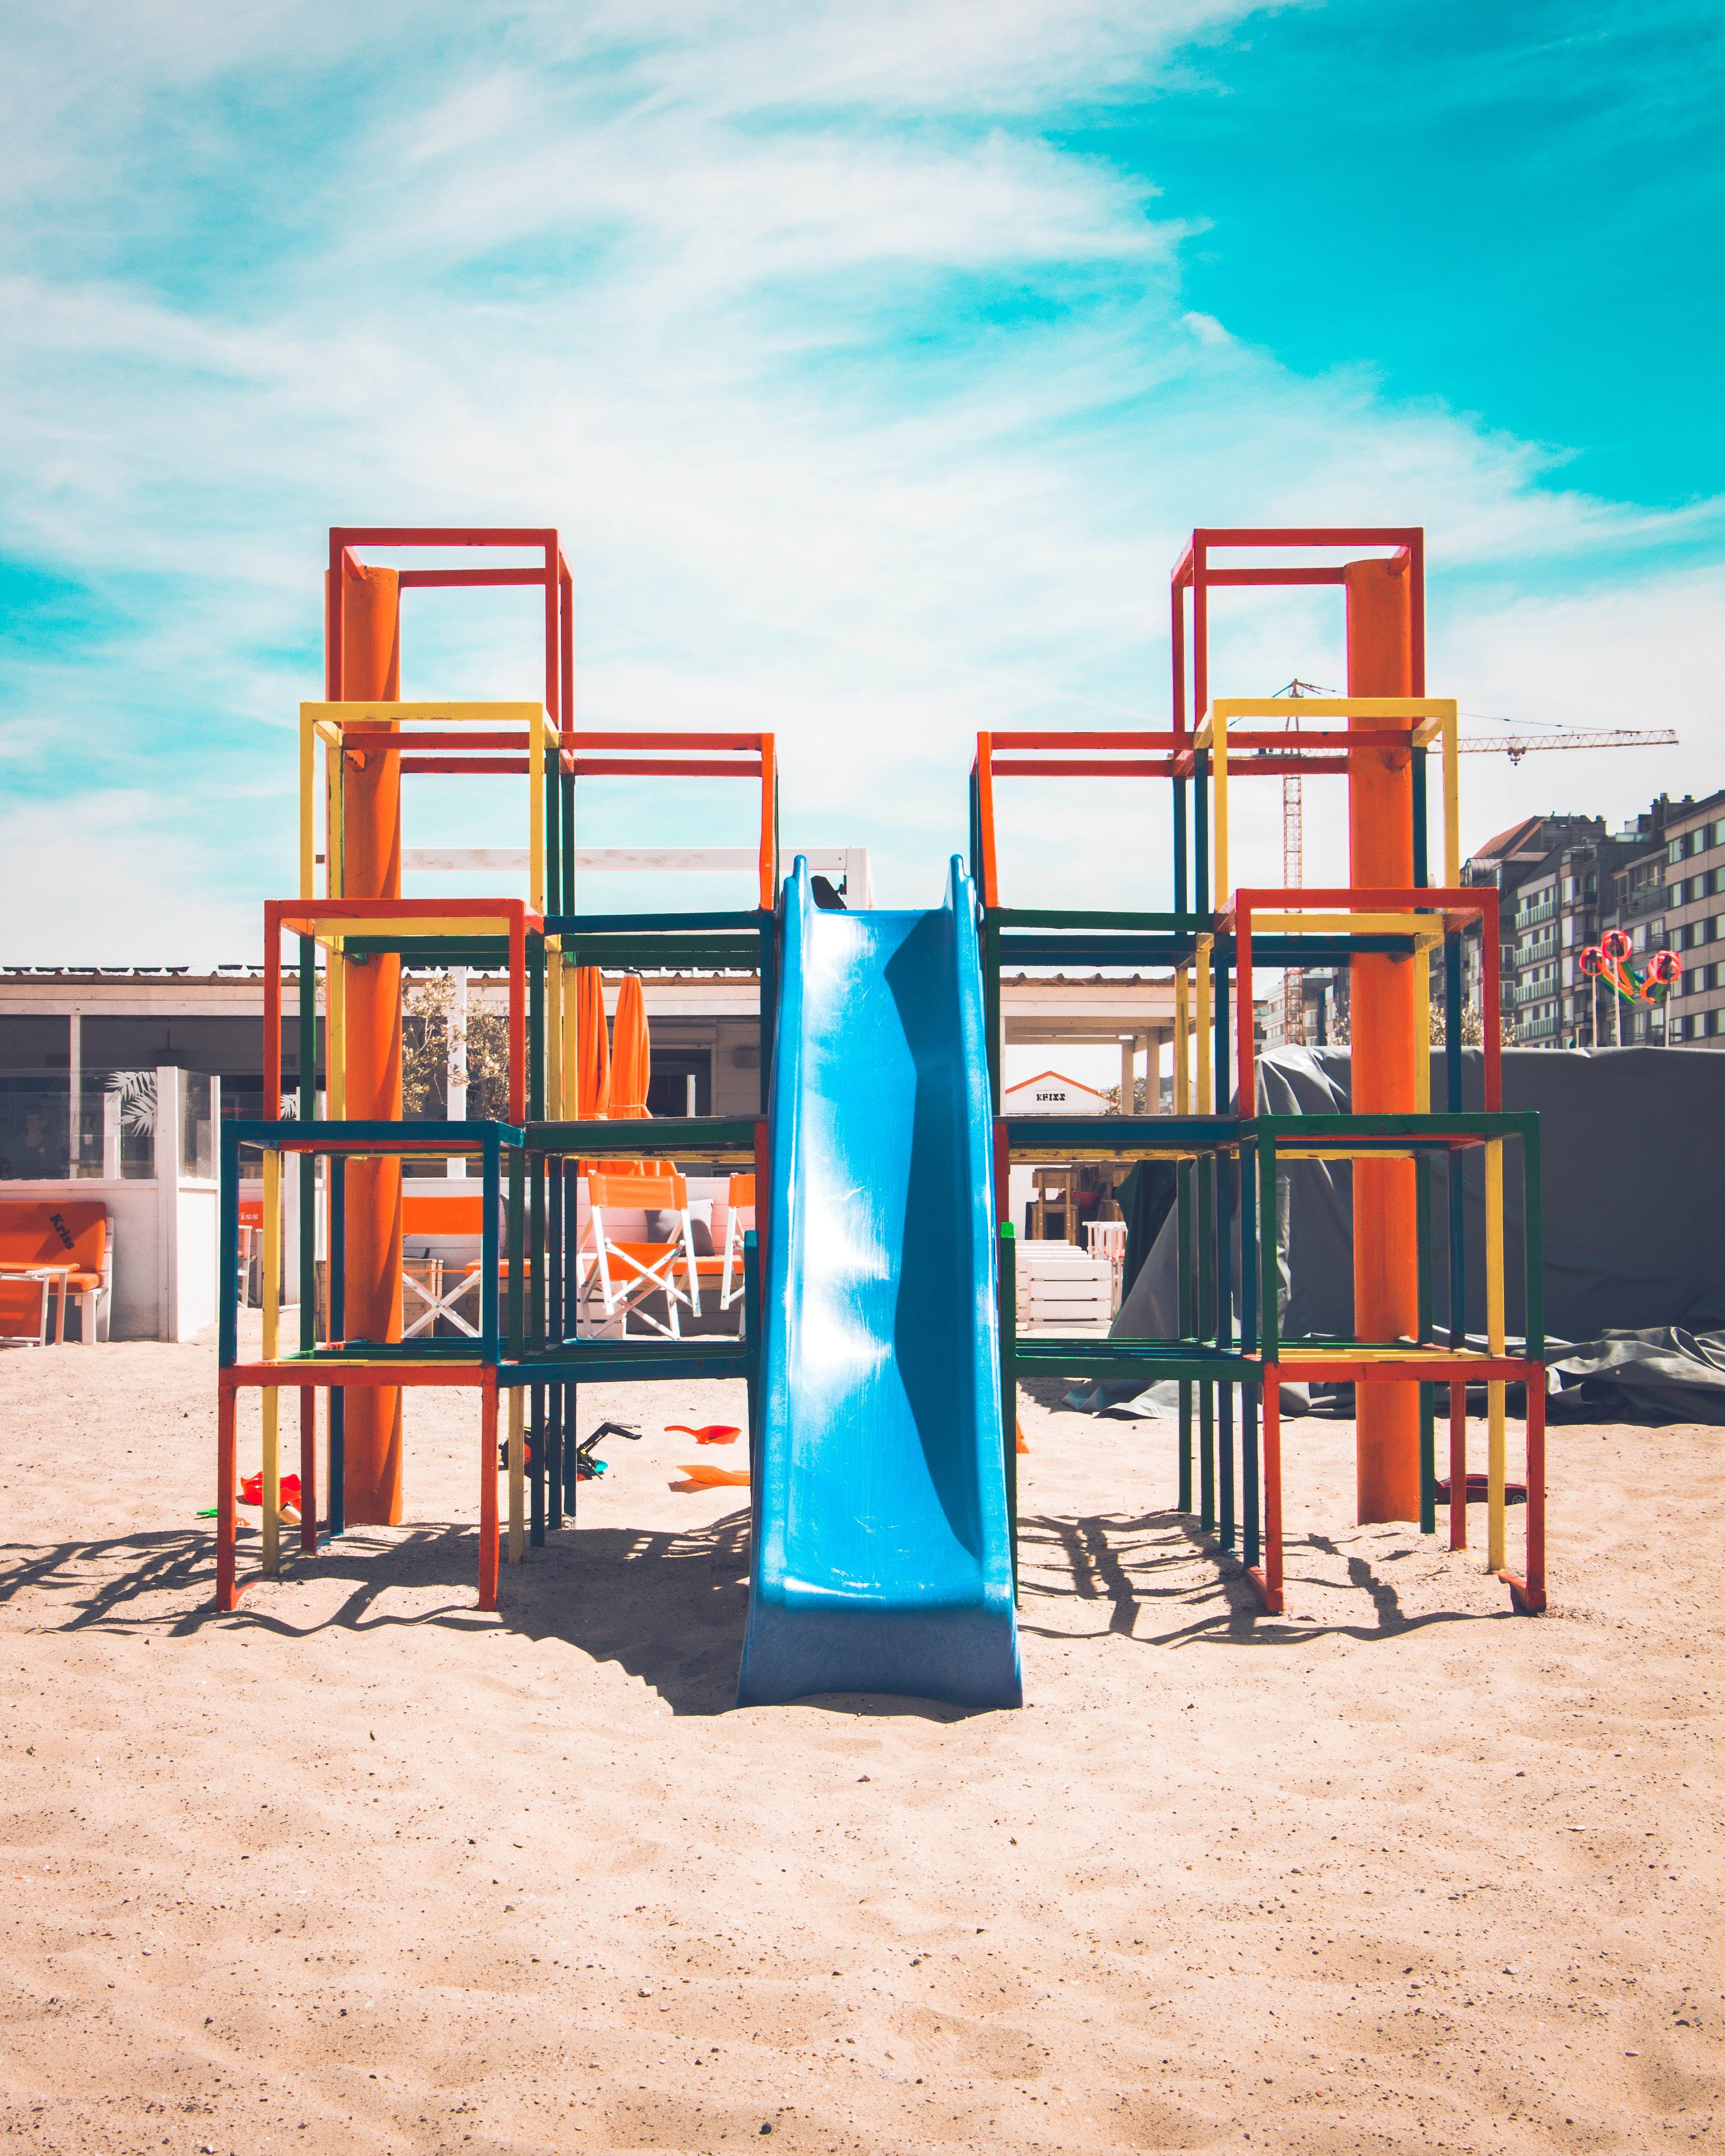 Churchich Recreation The History of the Playground Play Structure with Slide